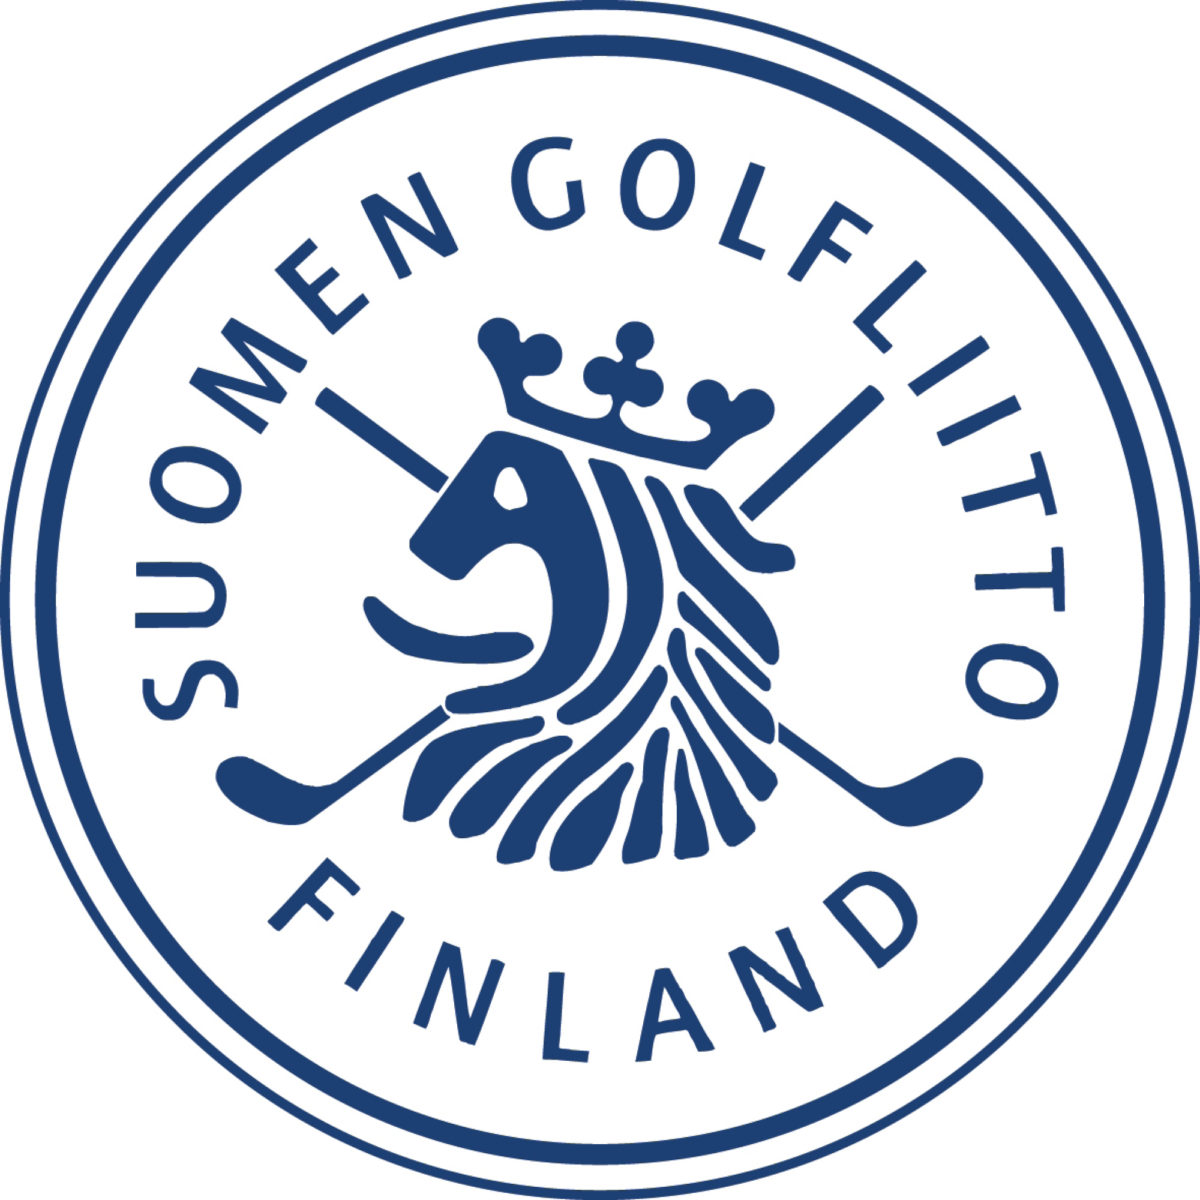 Finnish Golf Union